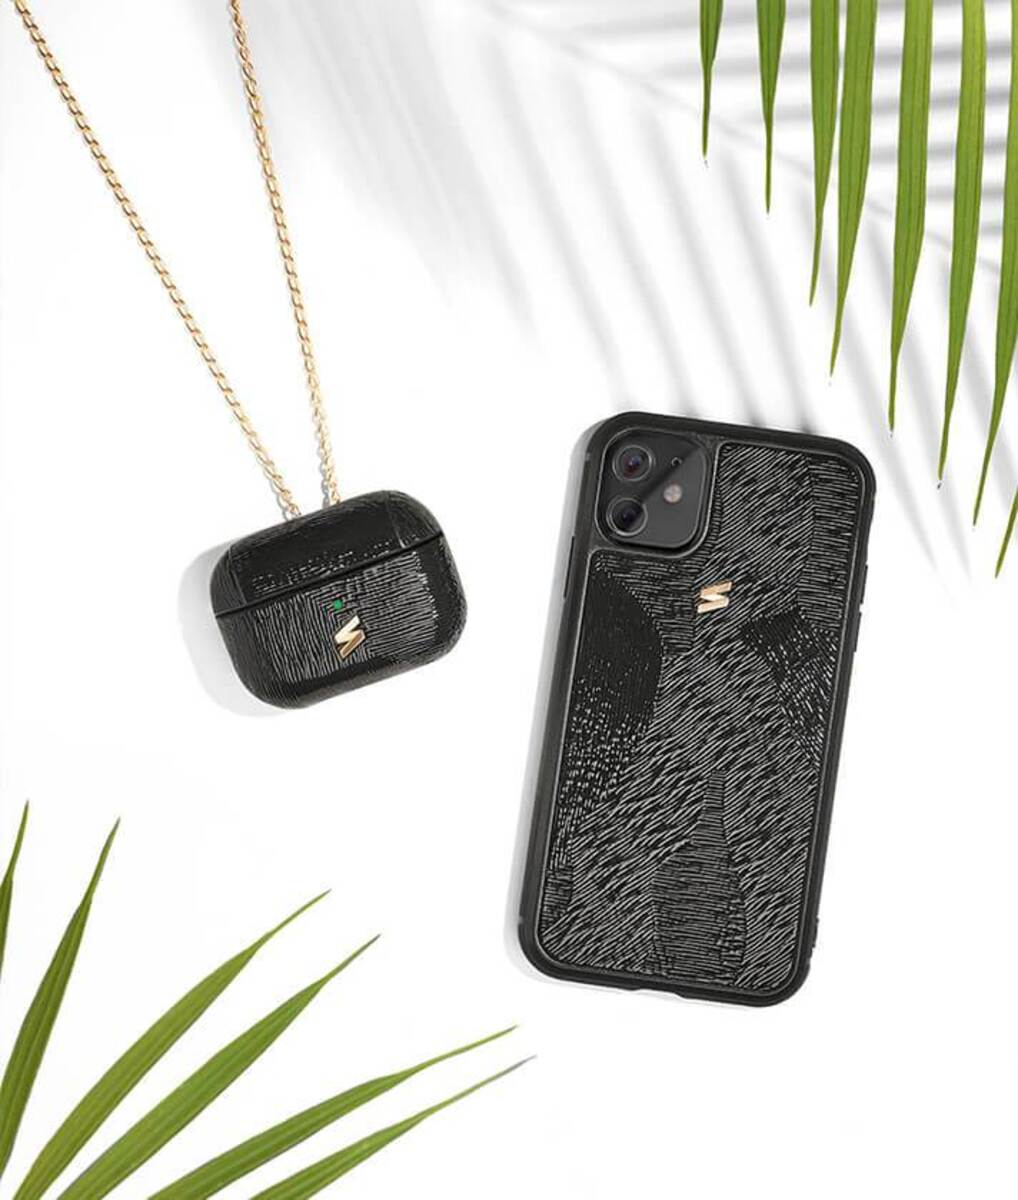 Iphone 11 case with camouflage texture in black patent leather